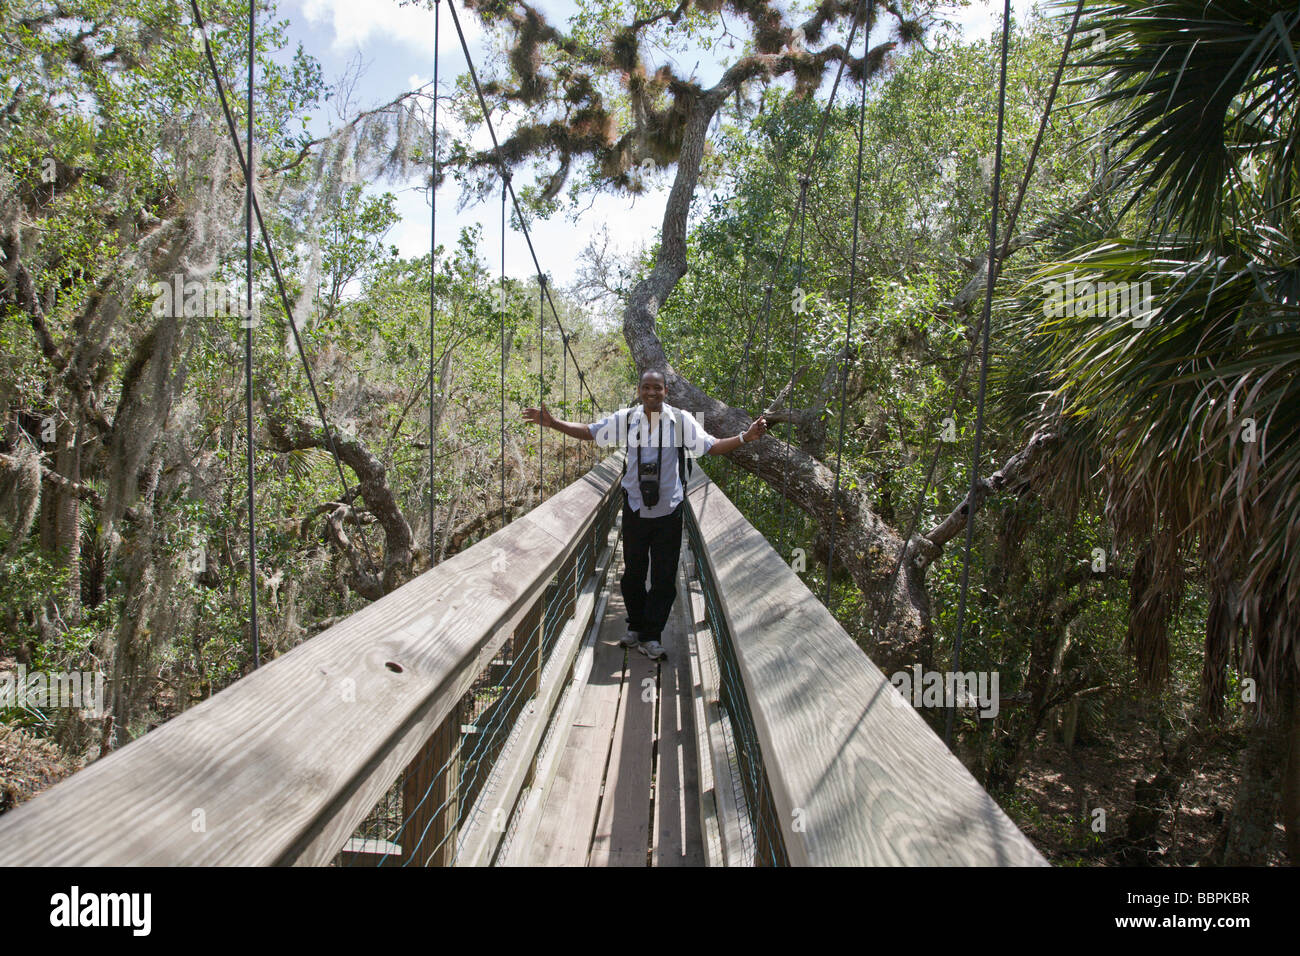 Idrissa Abdou, a tourist from Maryland, crosses the canopy walkway leading to the tower at Myakka River State Park Stock Photo